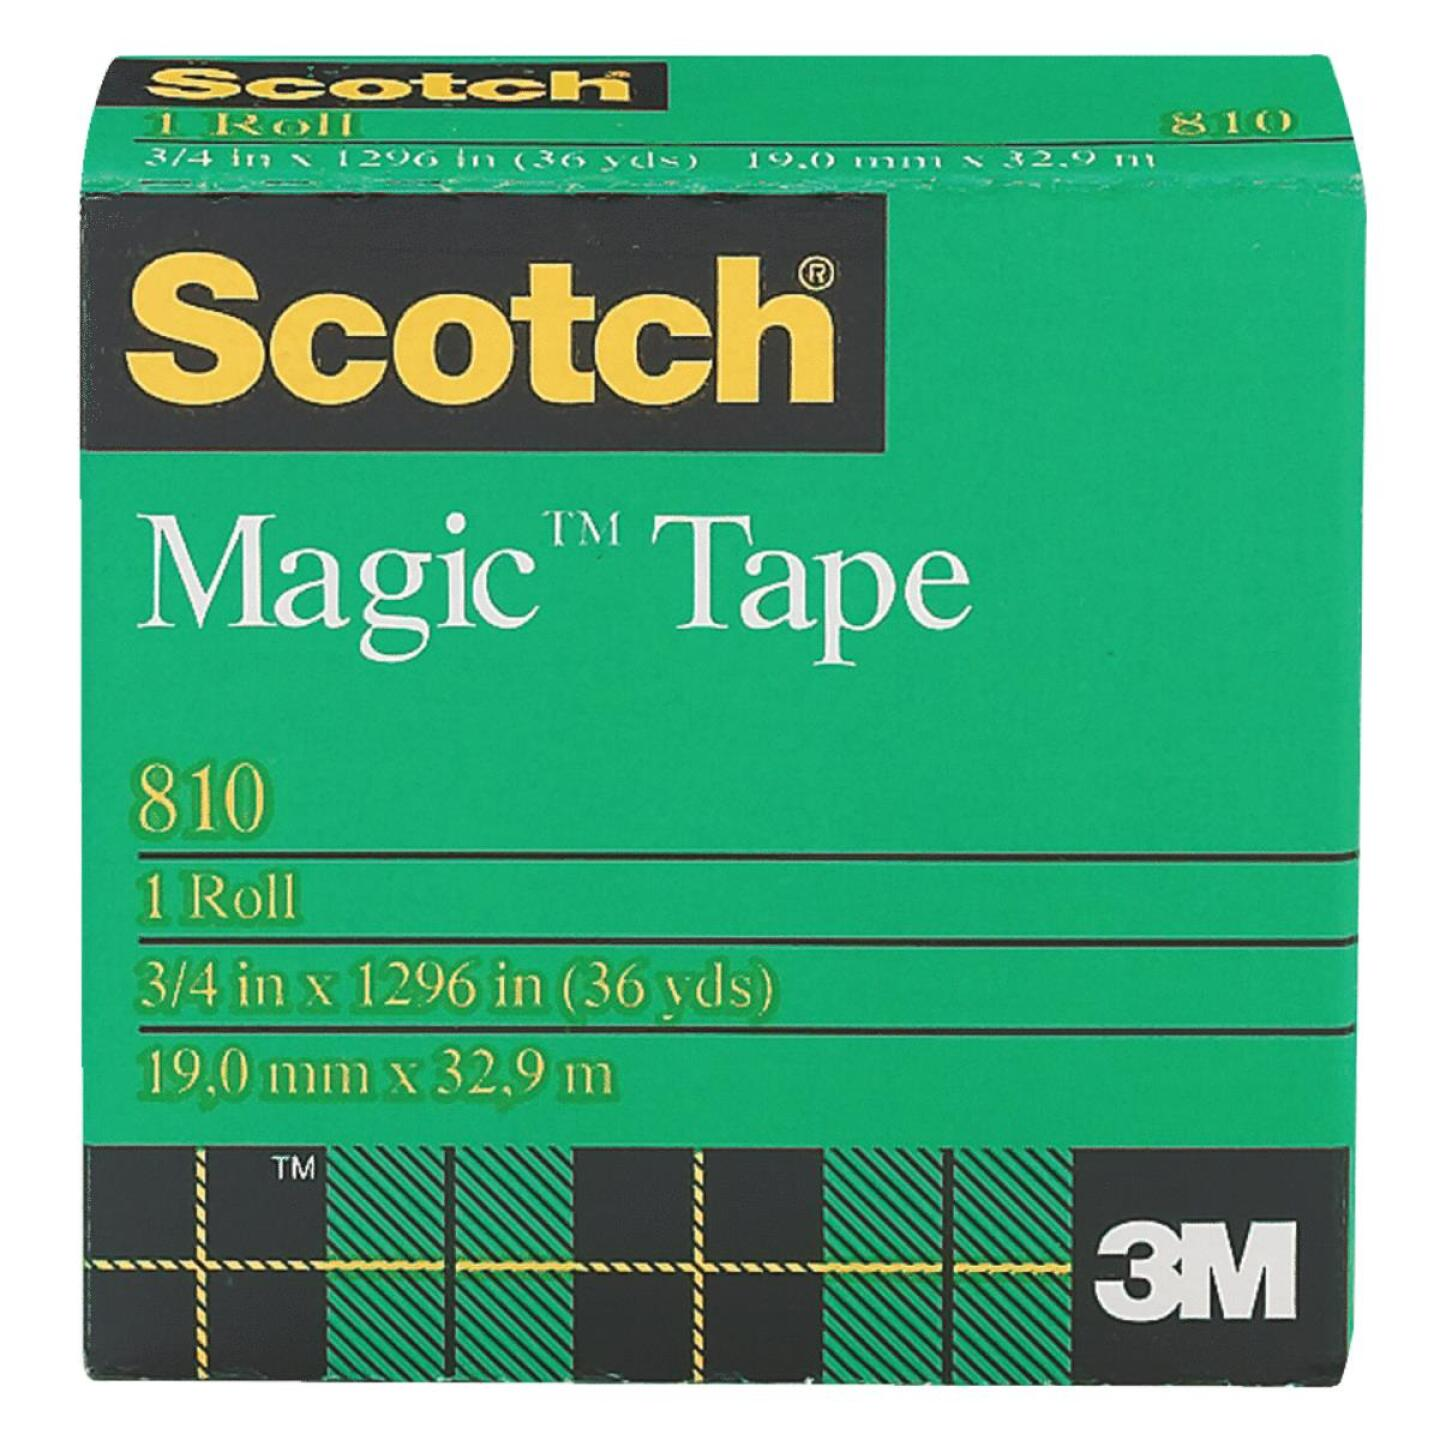 3M Scotch 3/4 In. x 1296 In. Magic Transparent Tape Refill Image 1